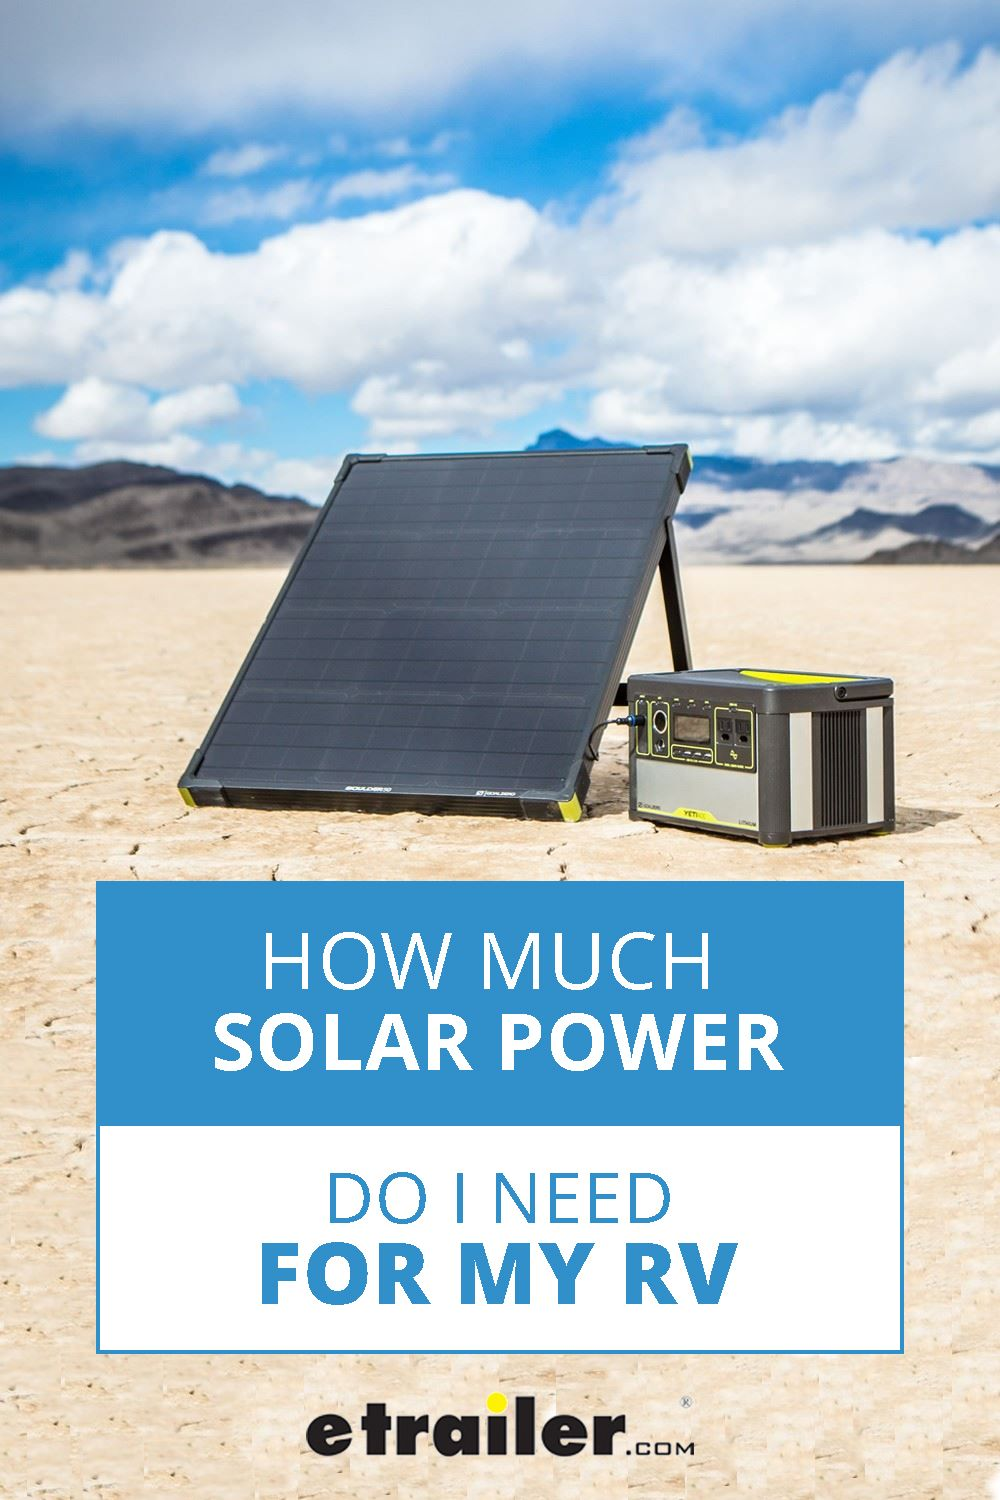 We Get It Upgrading Your Rv With Solar Power Is A Big Decision How Much Power Do You Need How Many We Re Here To Help Clea In 2020 Solar Solar Power Rv